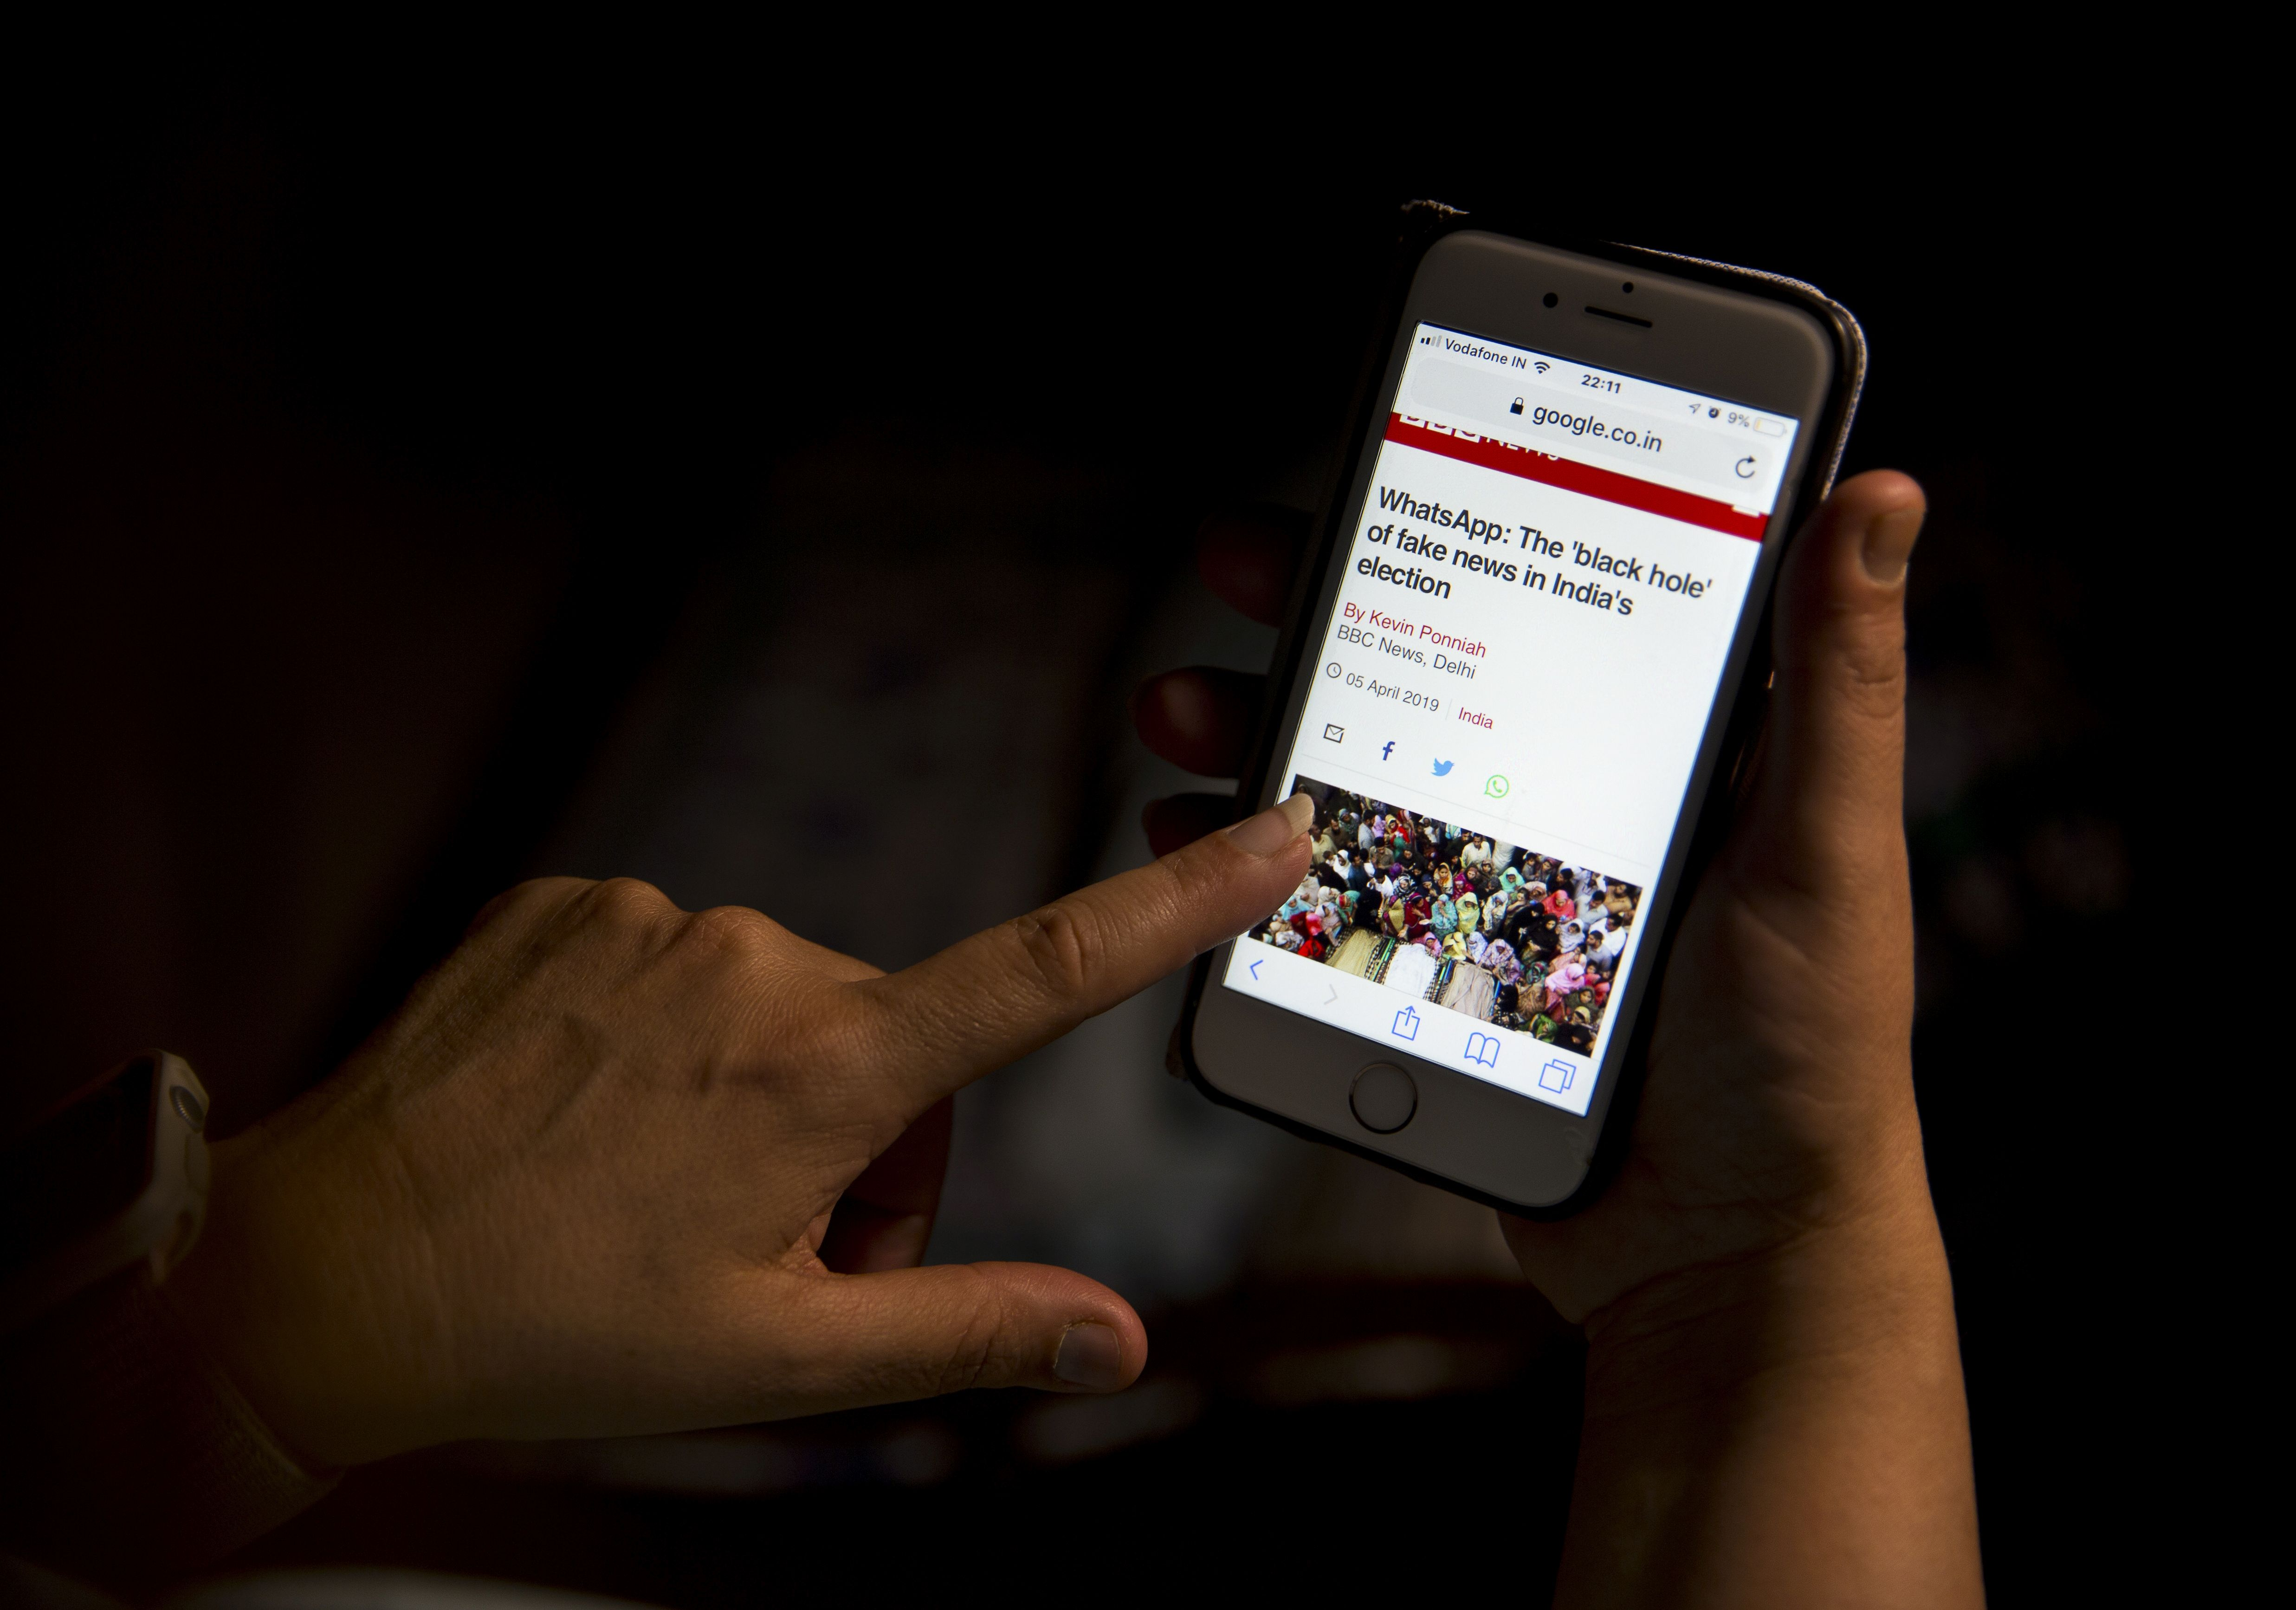 In this Monday, April 8, 2019, photo, a woman reads an article on her mobile phone concerning the chances of fake news in India during the upcoming elections in New Delhi, India. From manipulated pictures being picked up by mainstream news media, to misrepresented quotes sparking communal division, false news and hateful propaganda on digital platforms are at peak levels in the run-up to the Indian general elections (AP Photo/Manish Swarup)